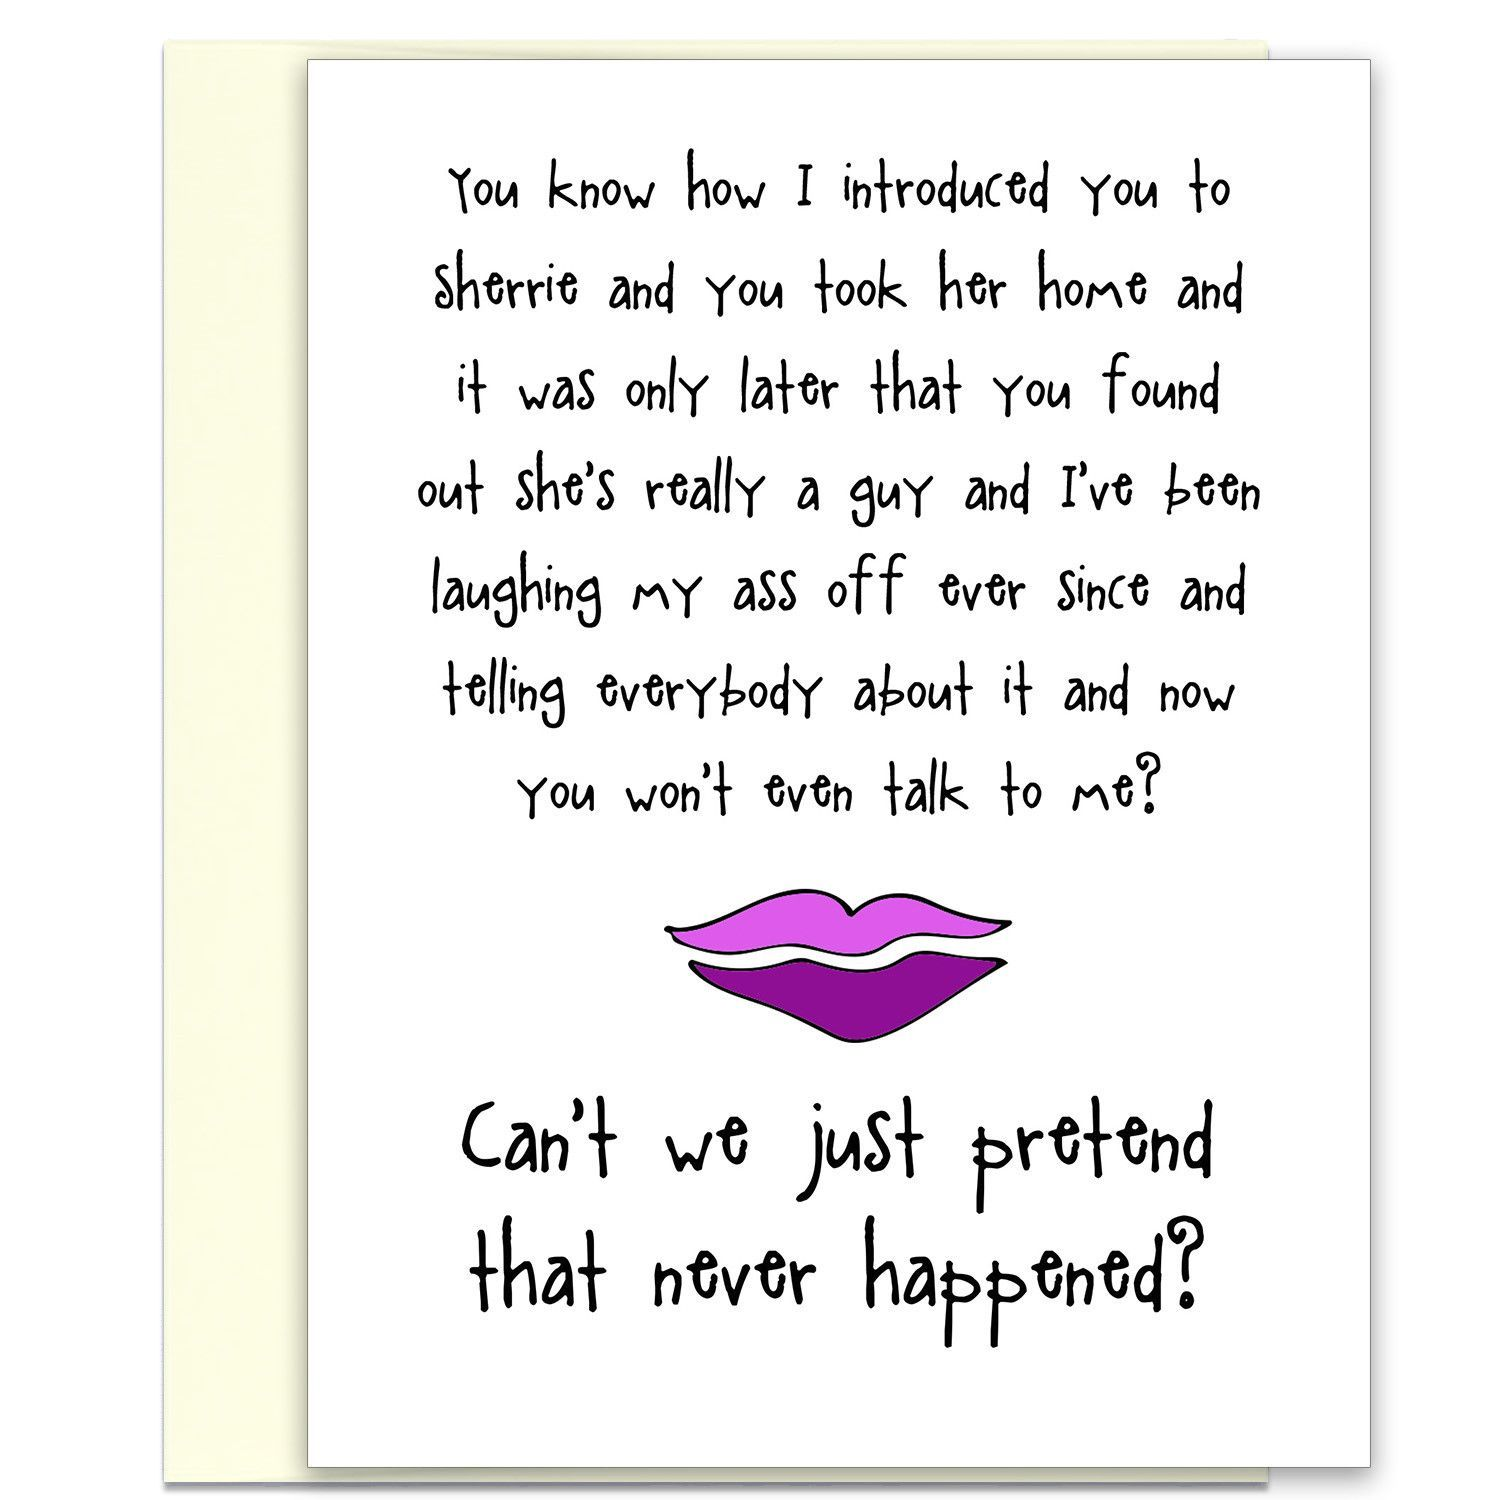 What are friends for funny greeting card for friends products funny greeting card for friends kristyandbryce Image collections